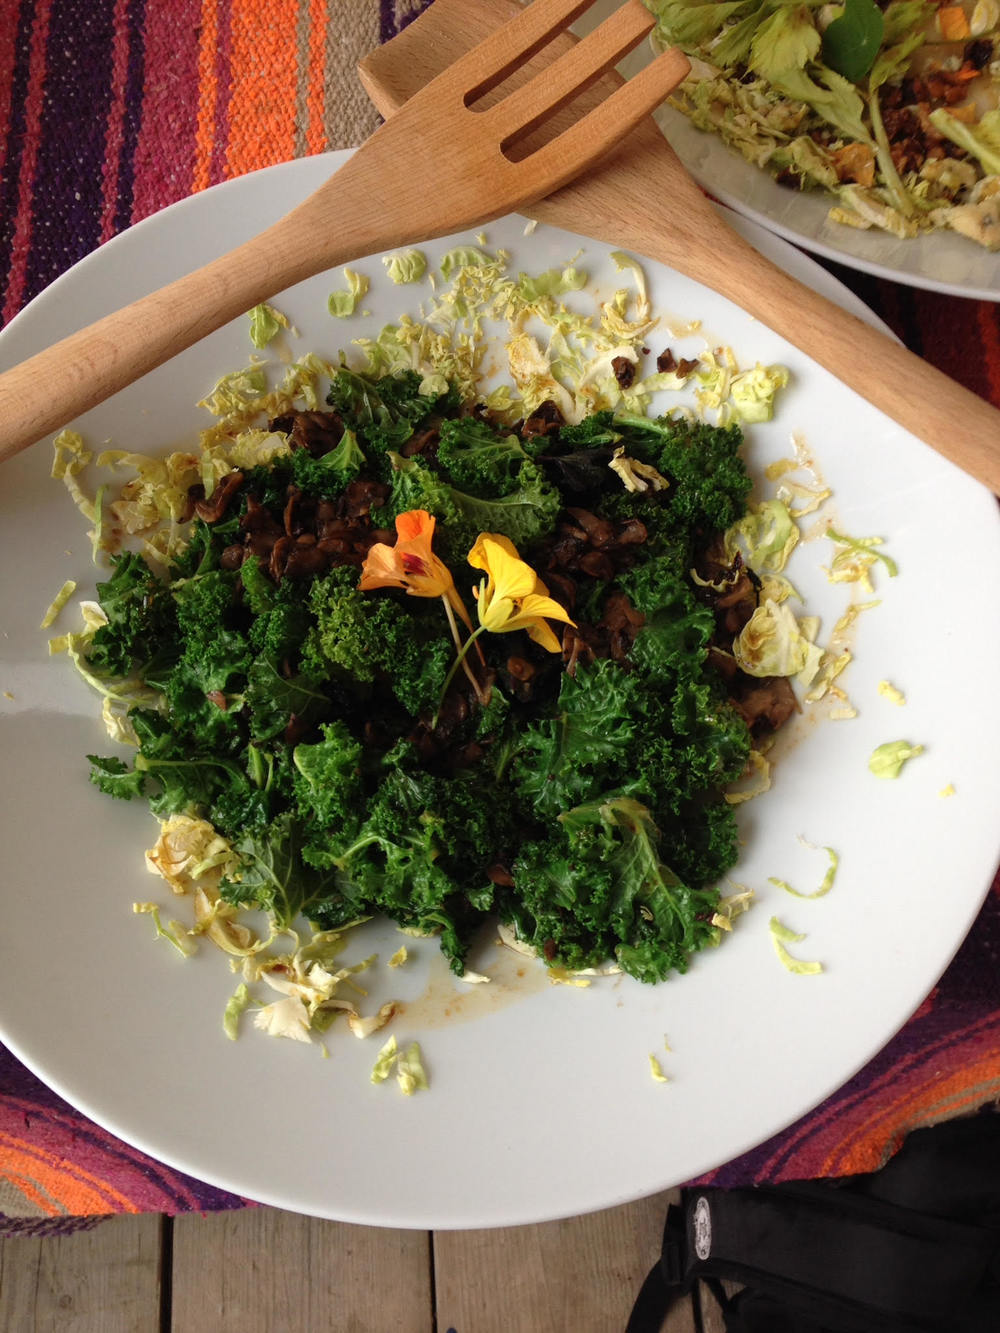 Brussels sprout, mushroom & kale salad with nasturtium flowers